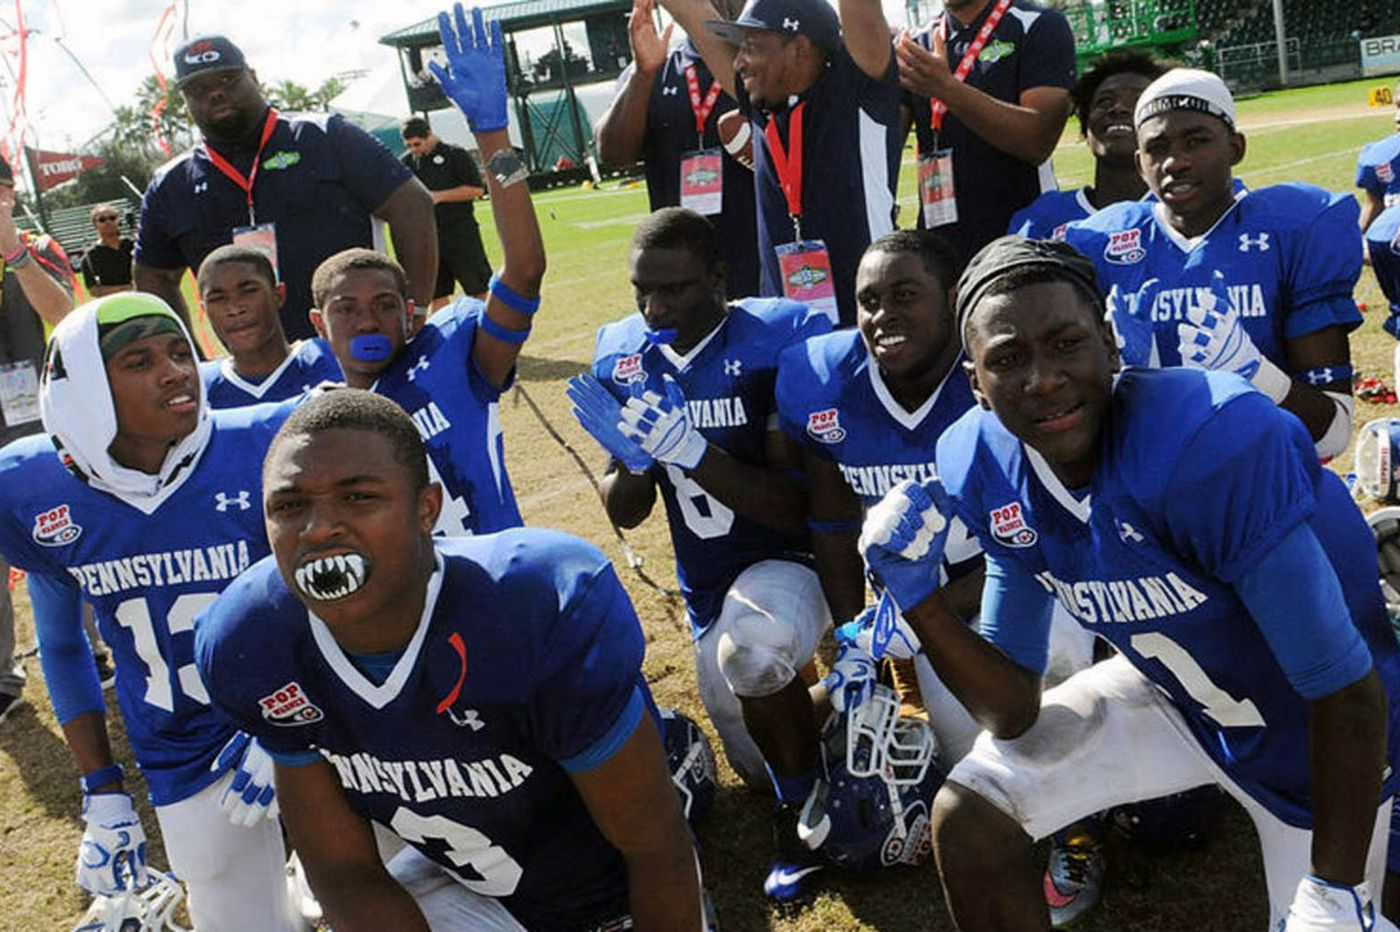 Philly Pop Warner team wins 2nd straight national championship